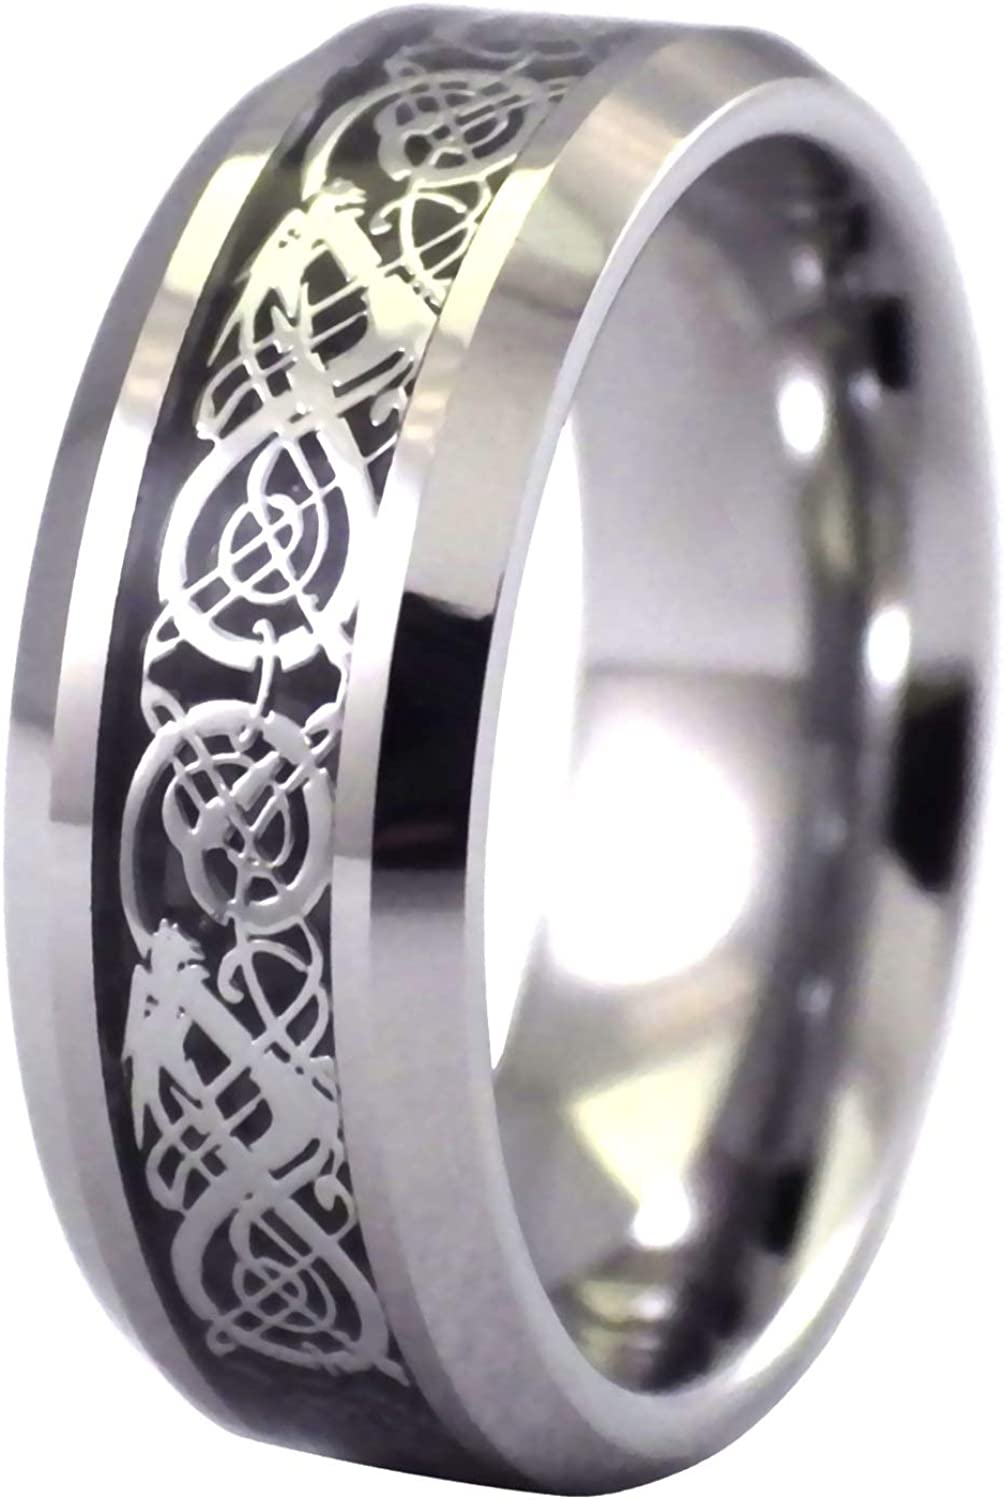 Fantasy Forge Jewelry Tungsten Celtic Dragon Ring Viking Black Wedding Band Handfasting Sizes 6-15